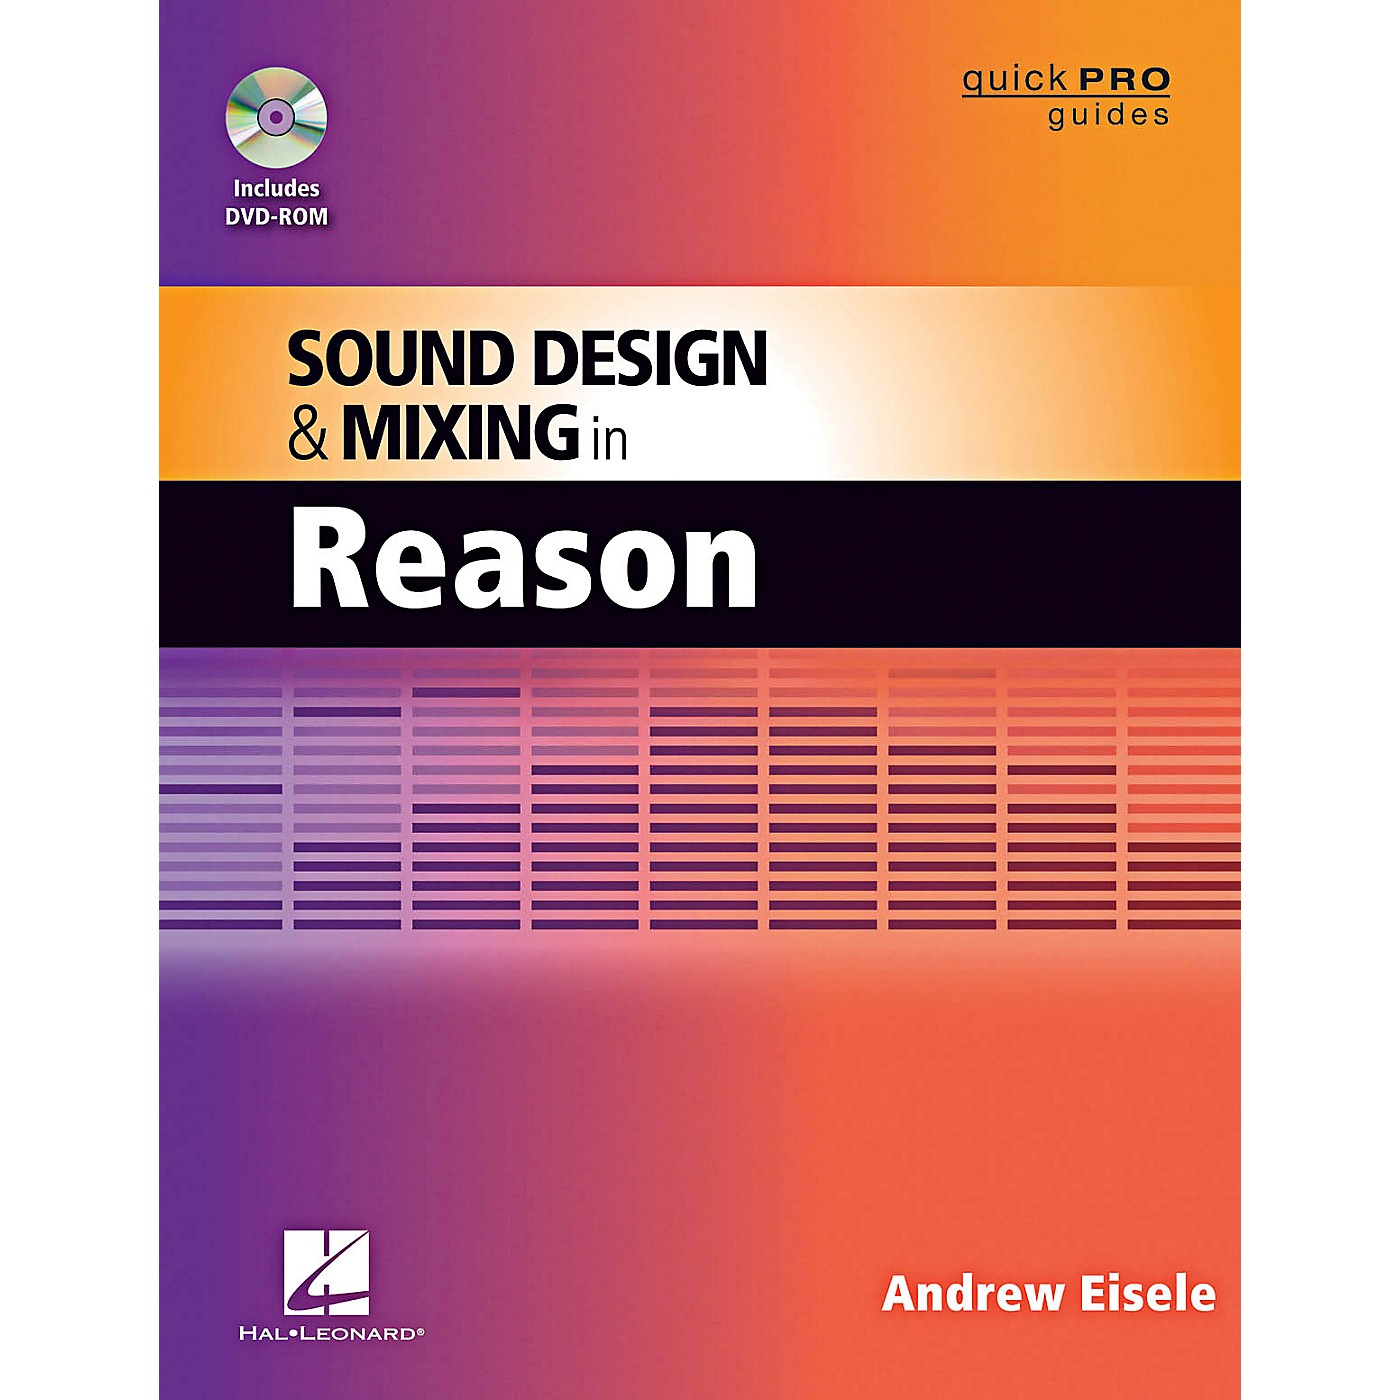 Hal Leonard Quick Pro Guides - Sound Design And Mixing In Reason Book/DVD-ROM thumbnail